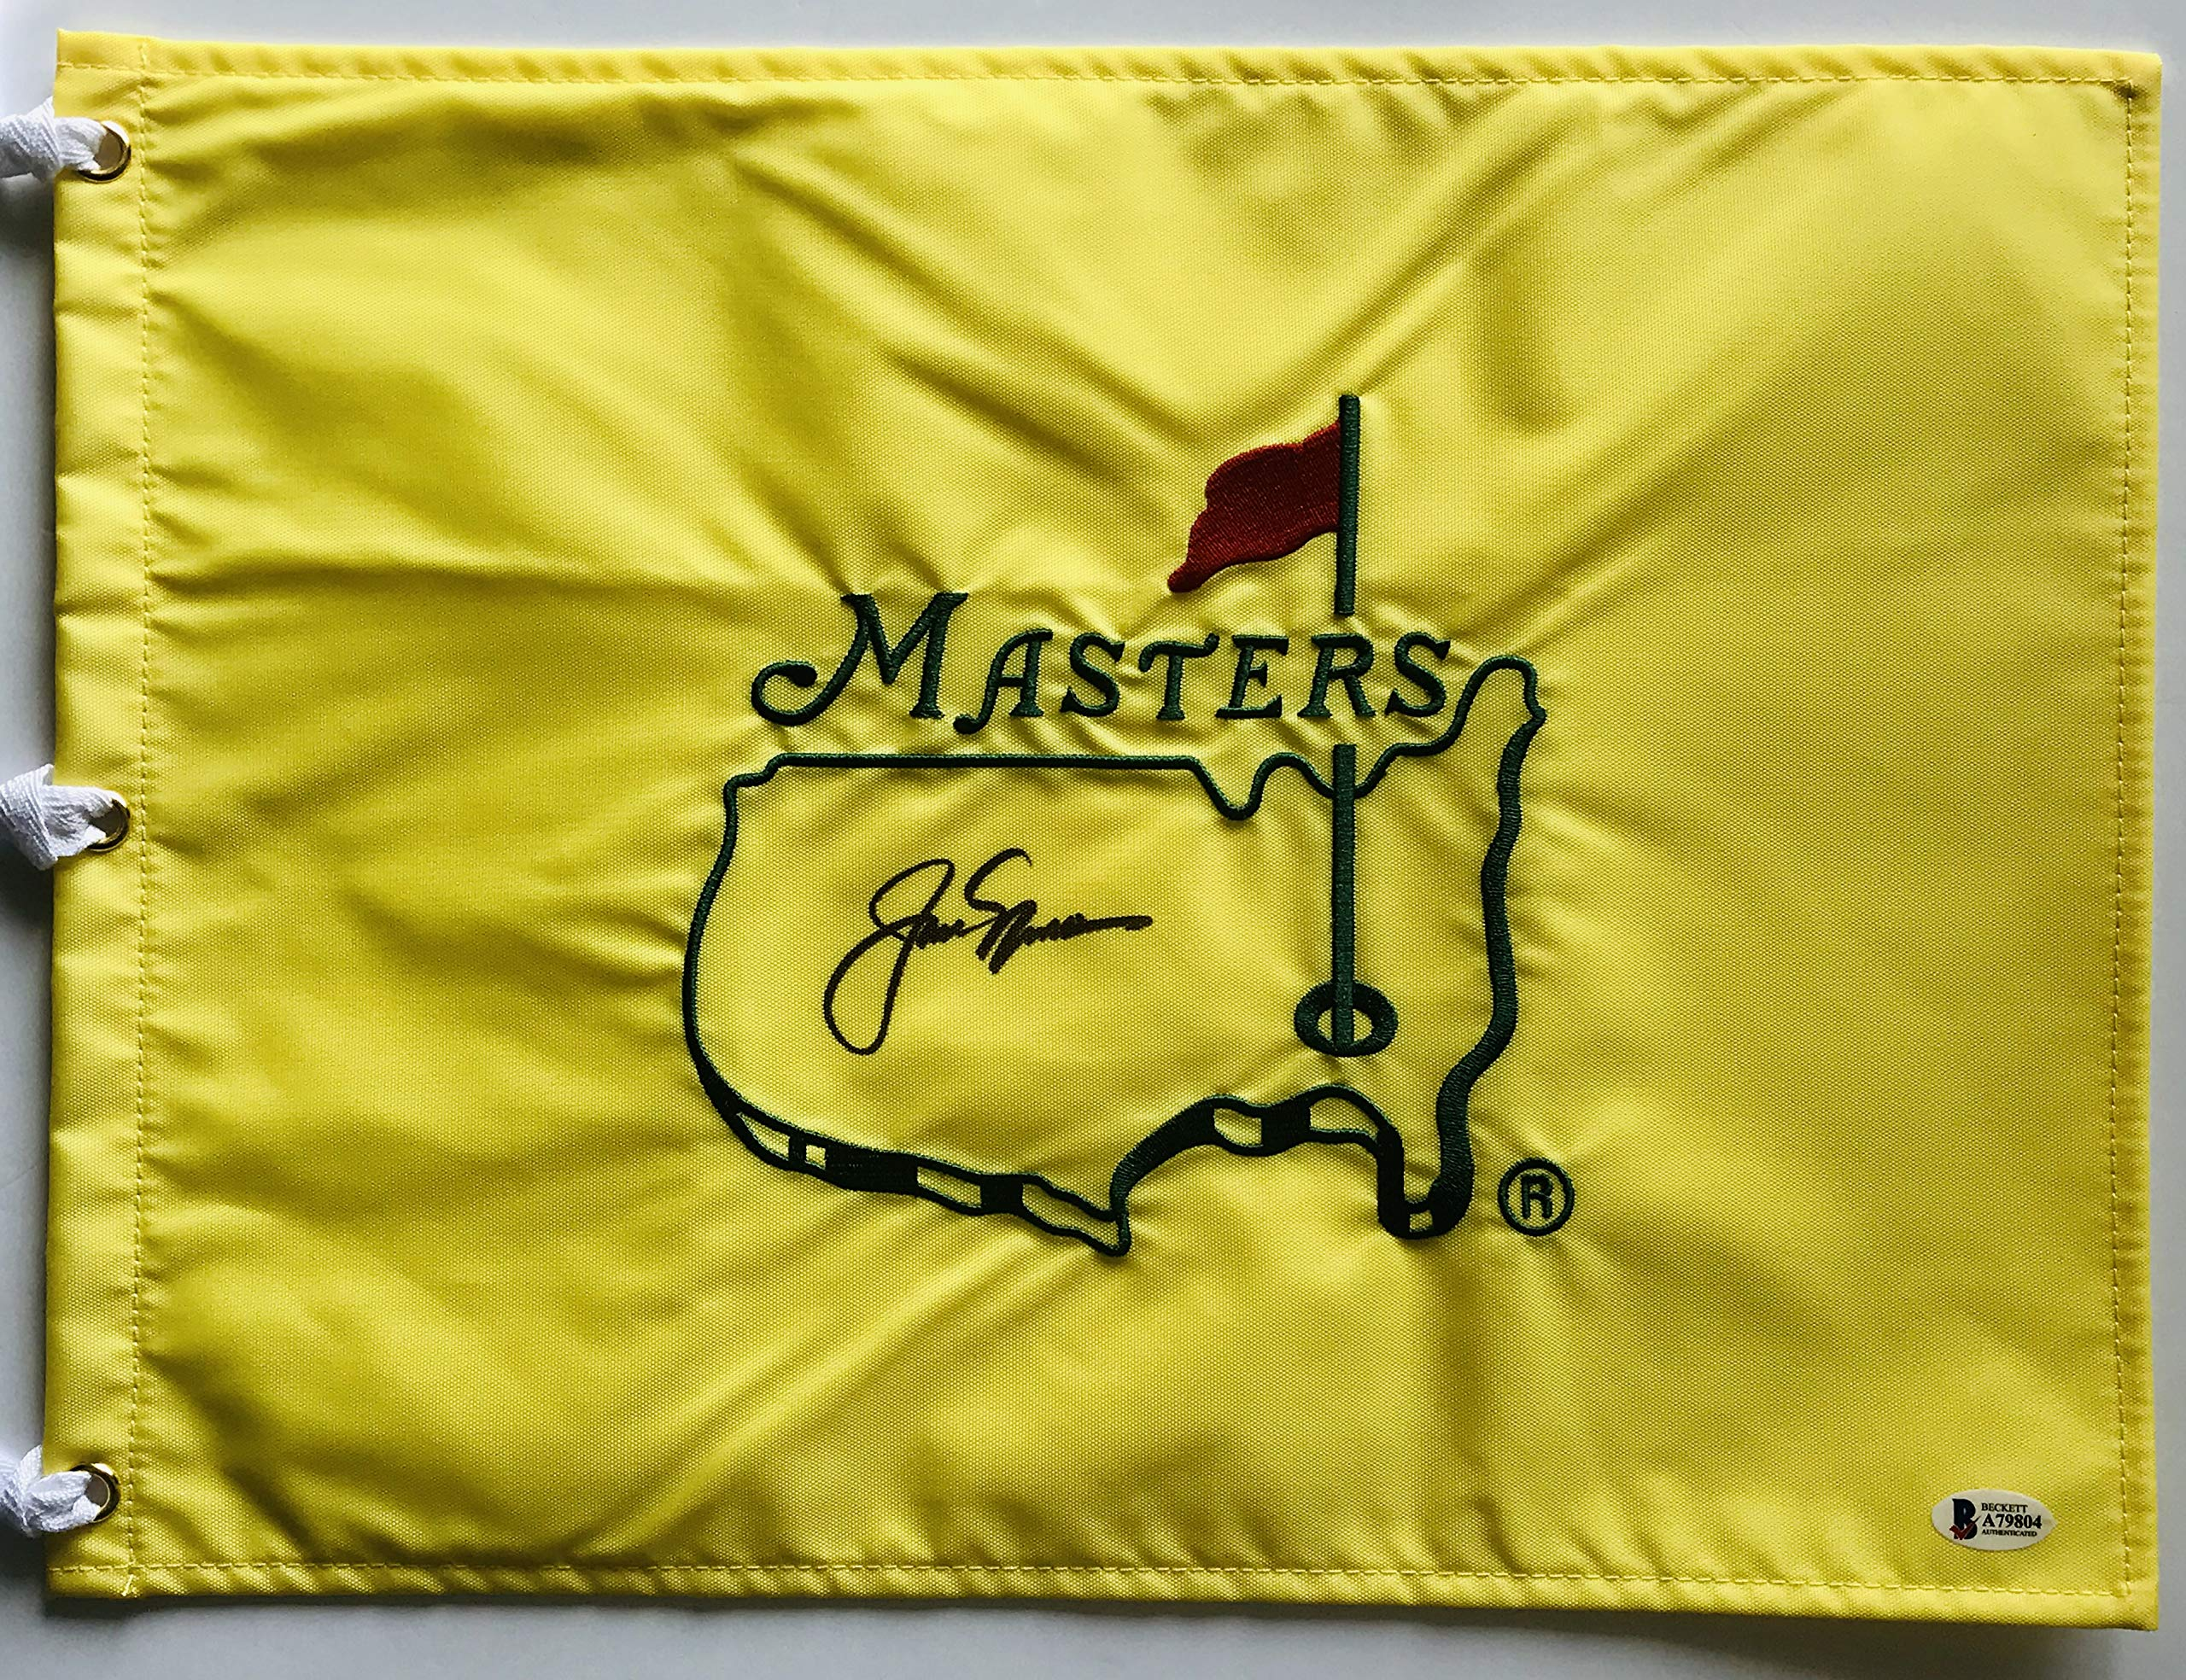 Jack Nicklaus signed Masters golf flag undated beckett loa pga augusta national